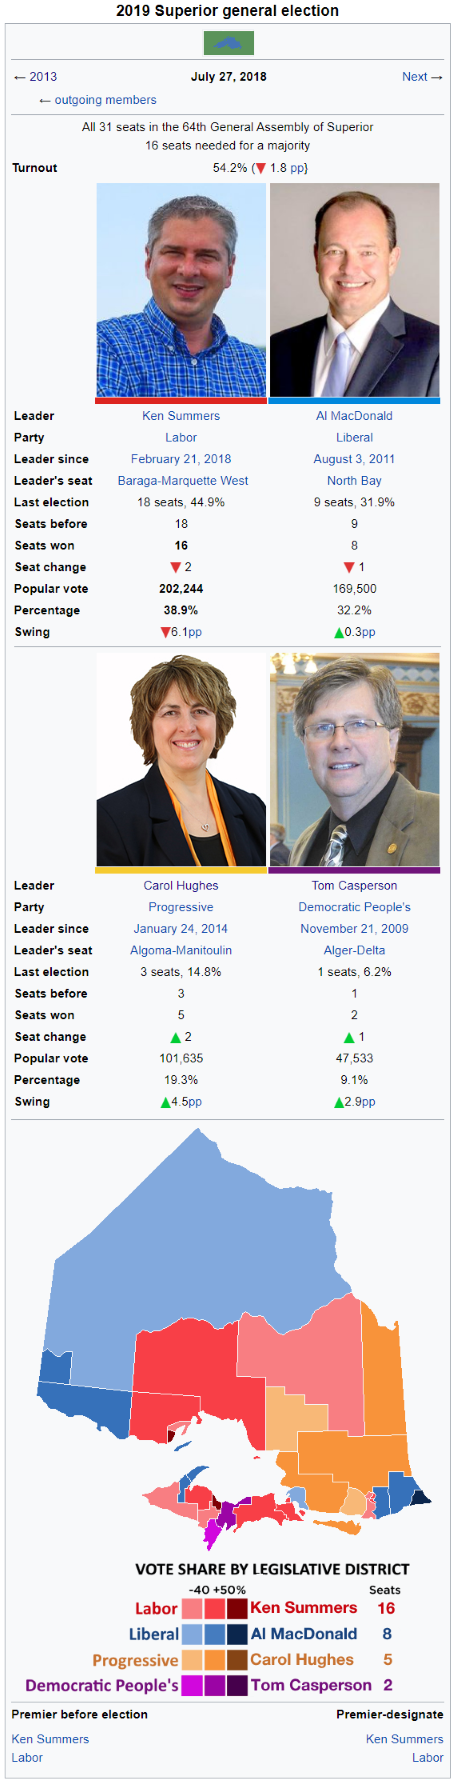 2019 Superior Election Wiki 2.png